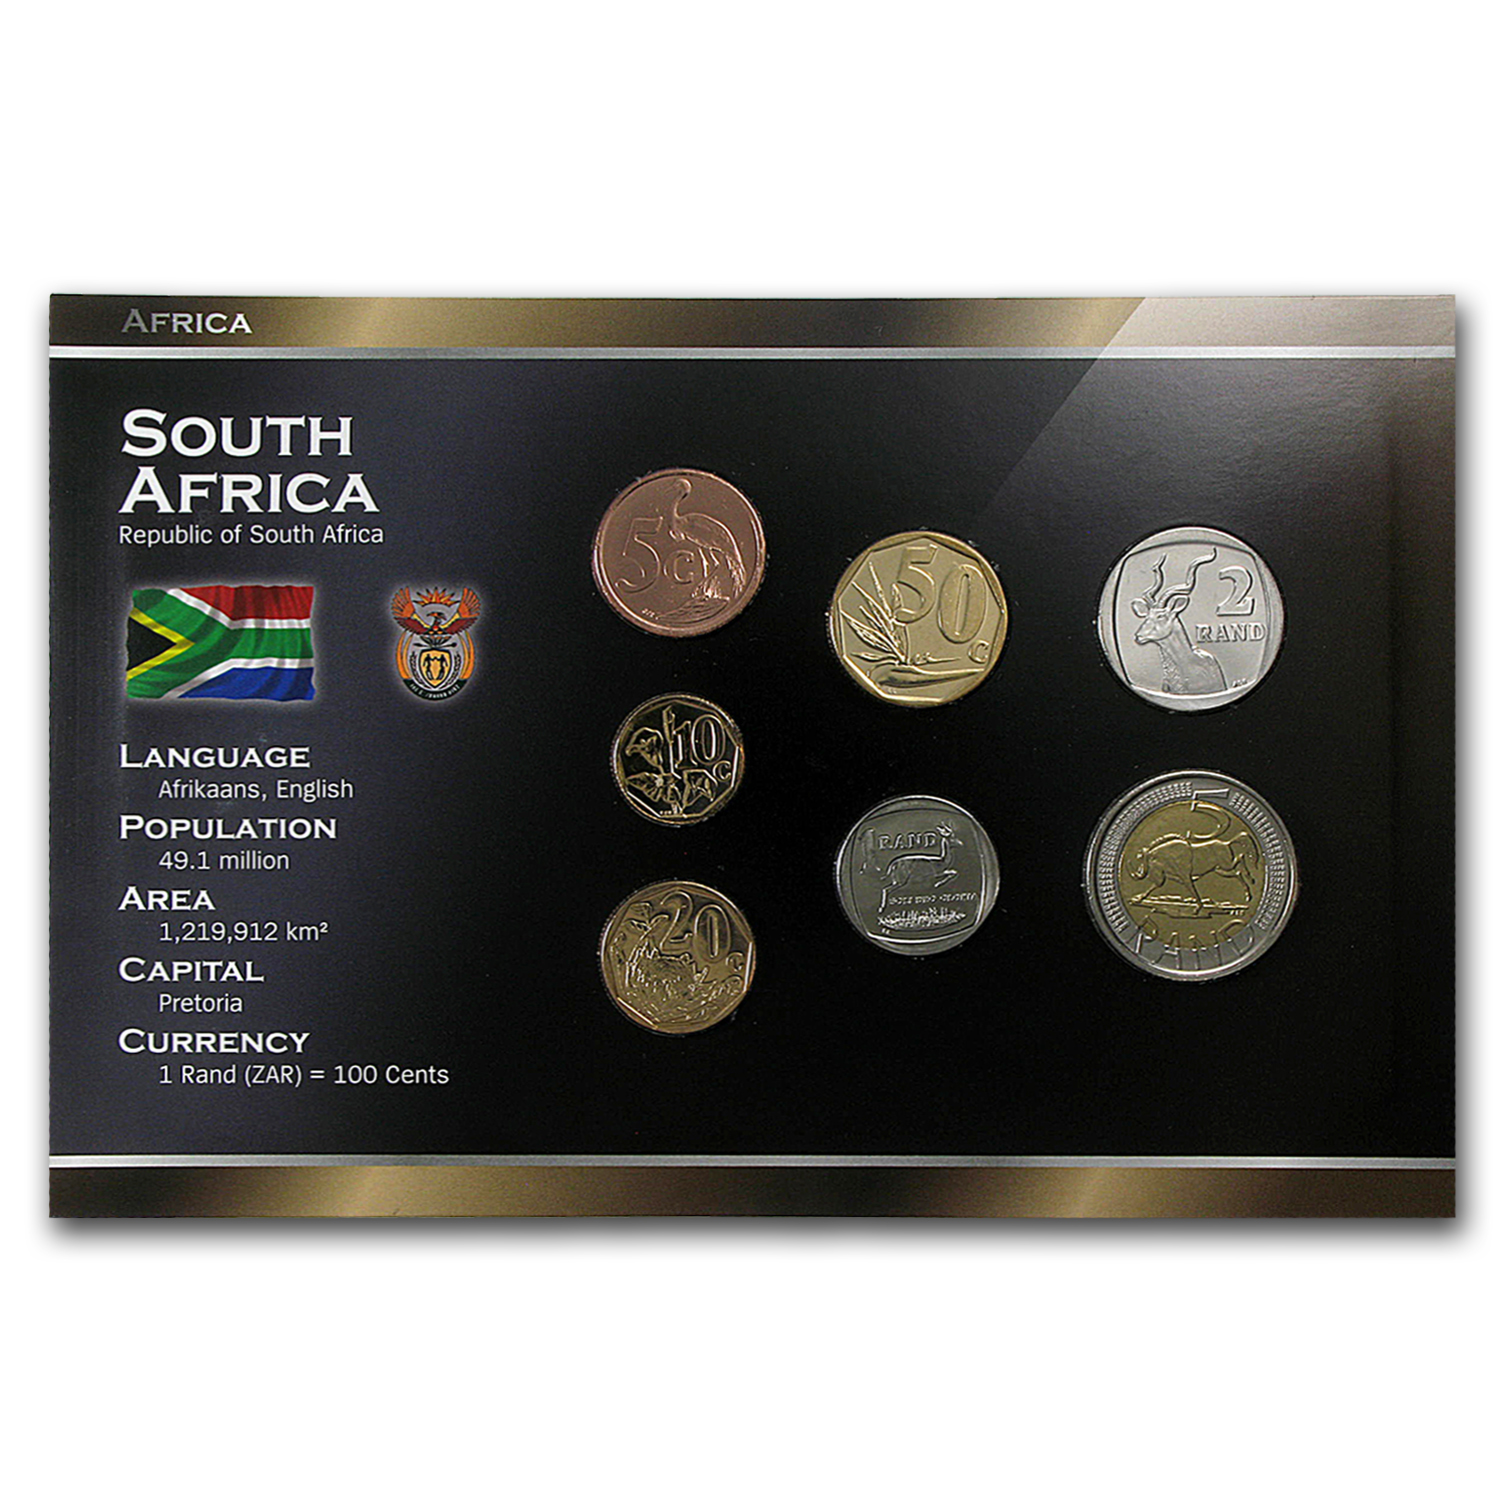 2006-2011 South Africa 5 Cent-5 Rand Coin Set Unc